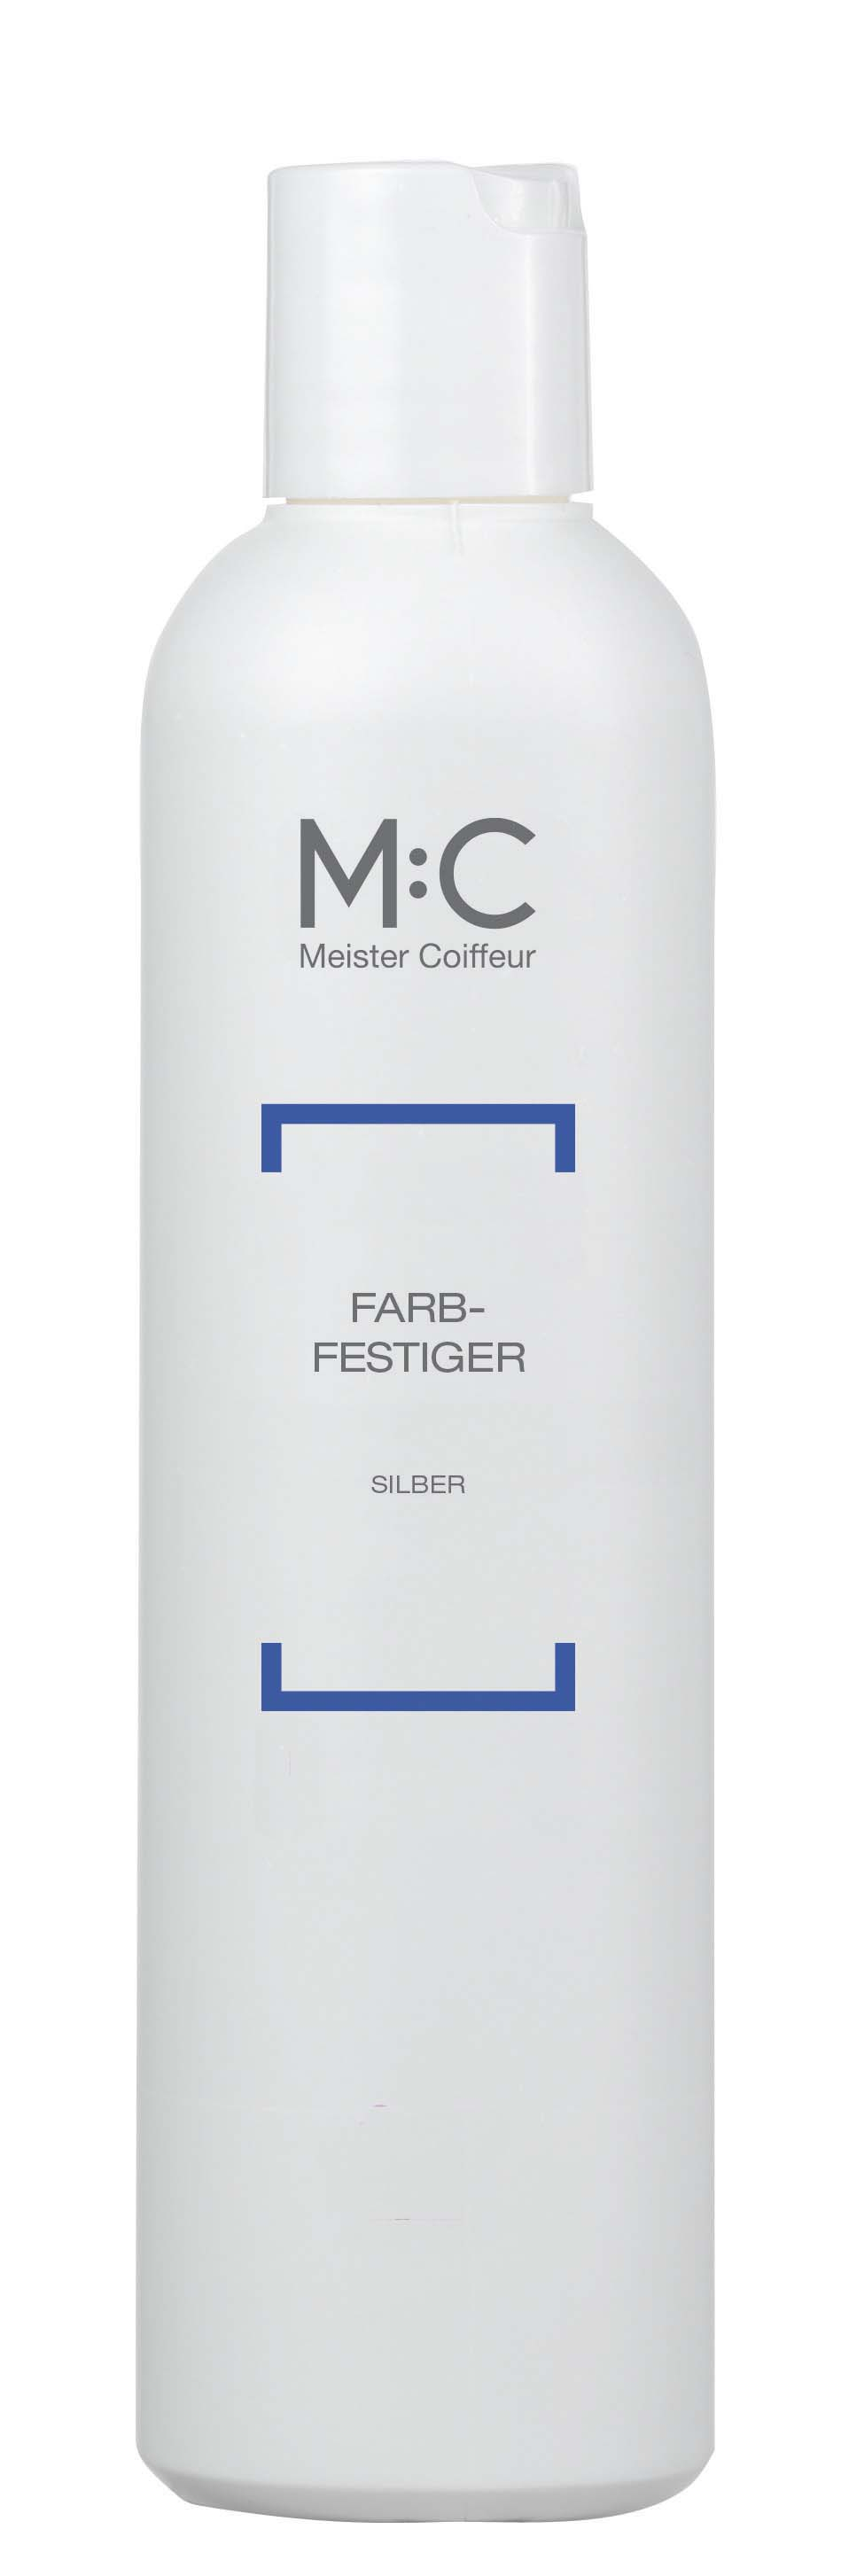 M:C Color Lotion argent C